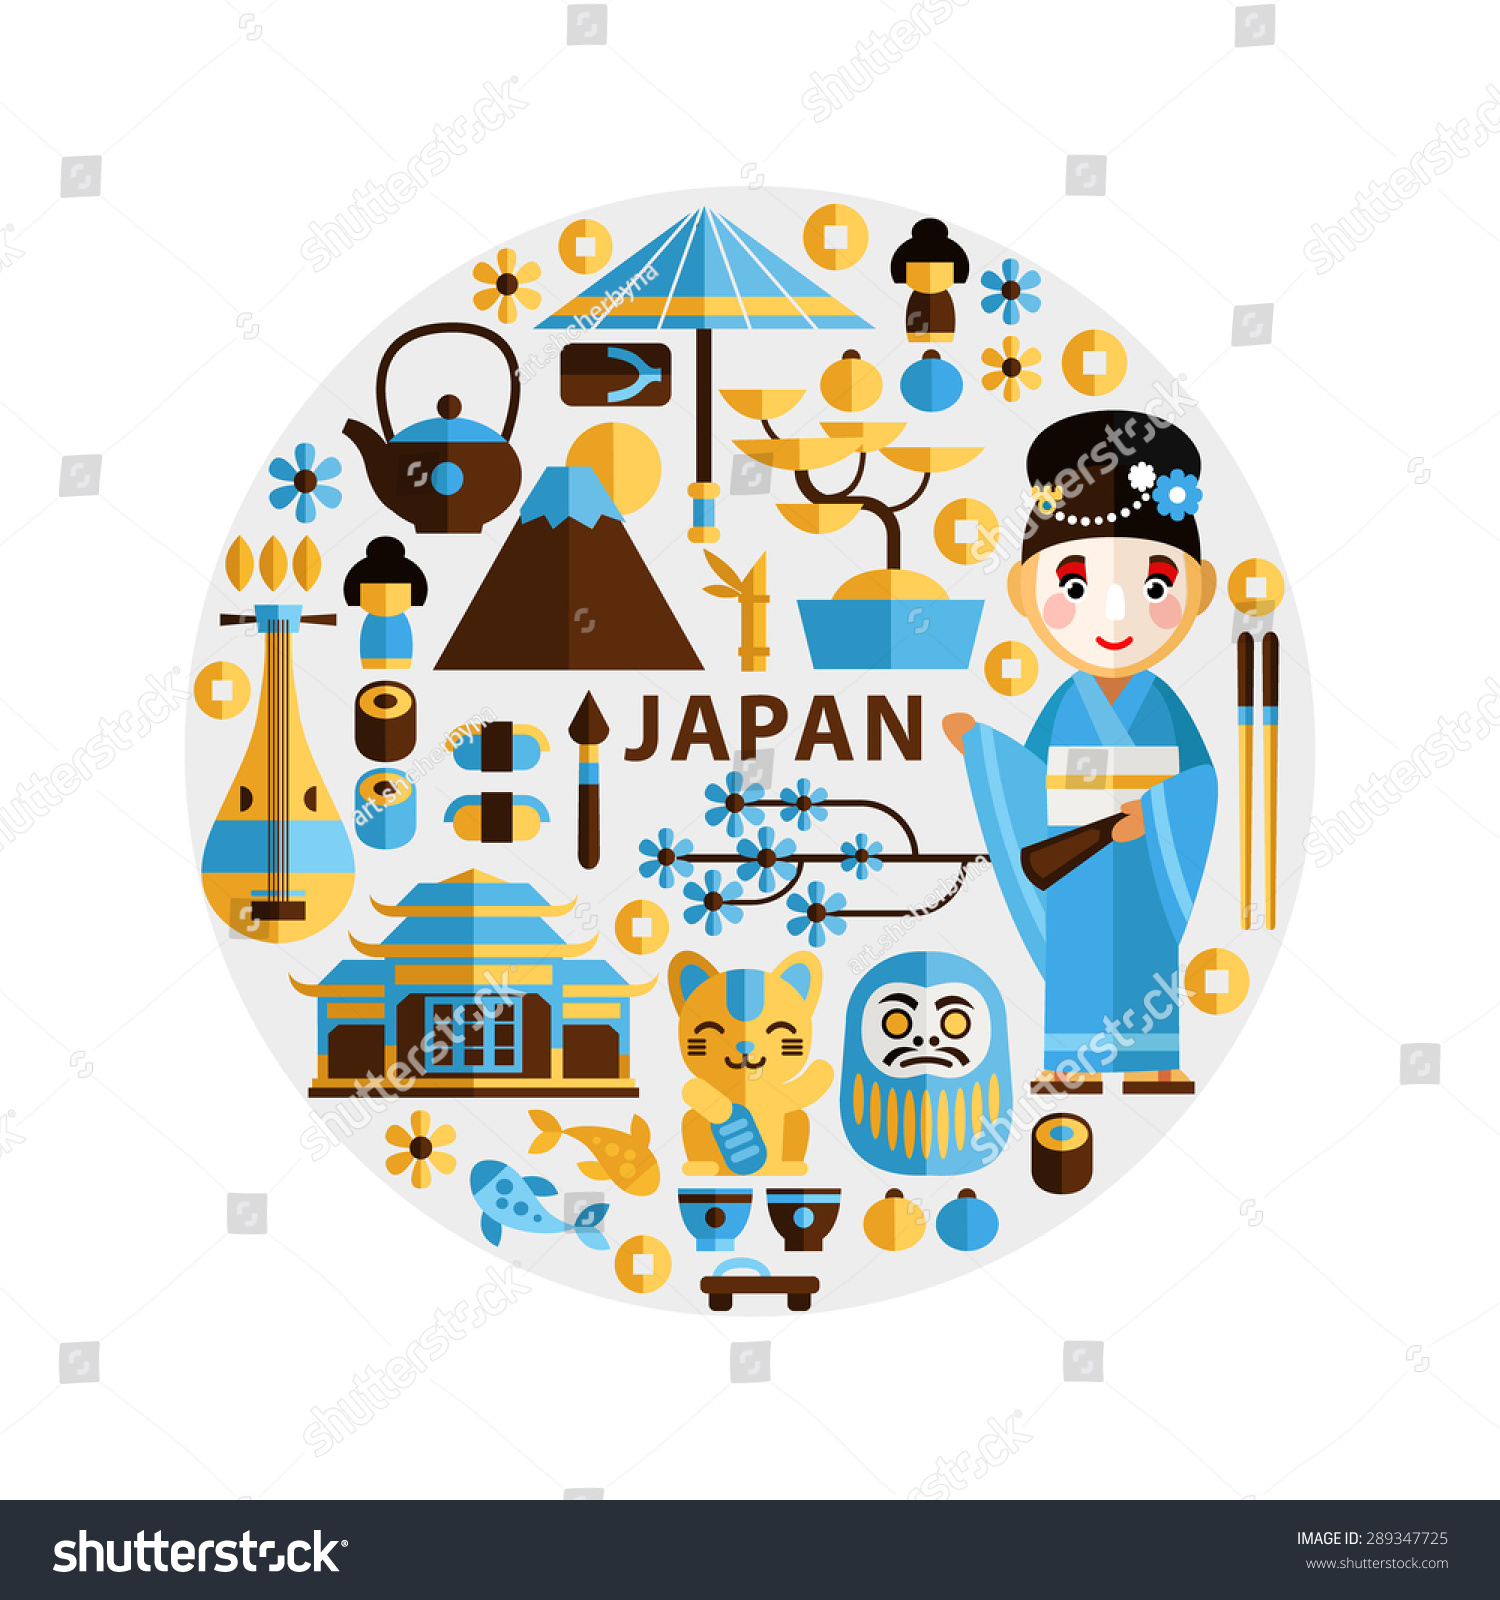 Set traditional japanese symbols characters flat stock vector set of traditional japanese symbols and characters in a flat style asian vector graphic elements biocorpaavc